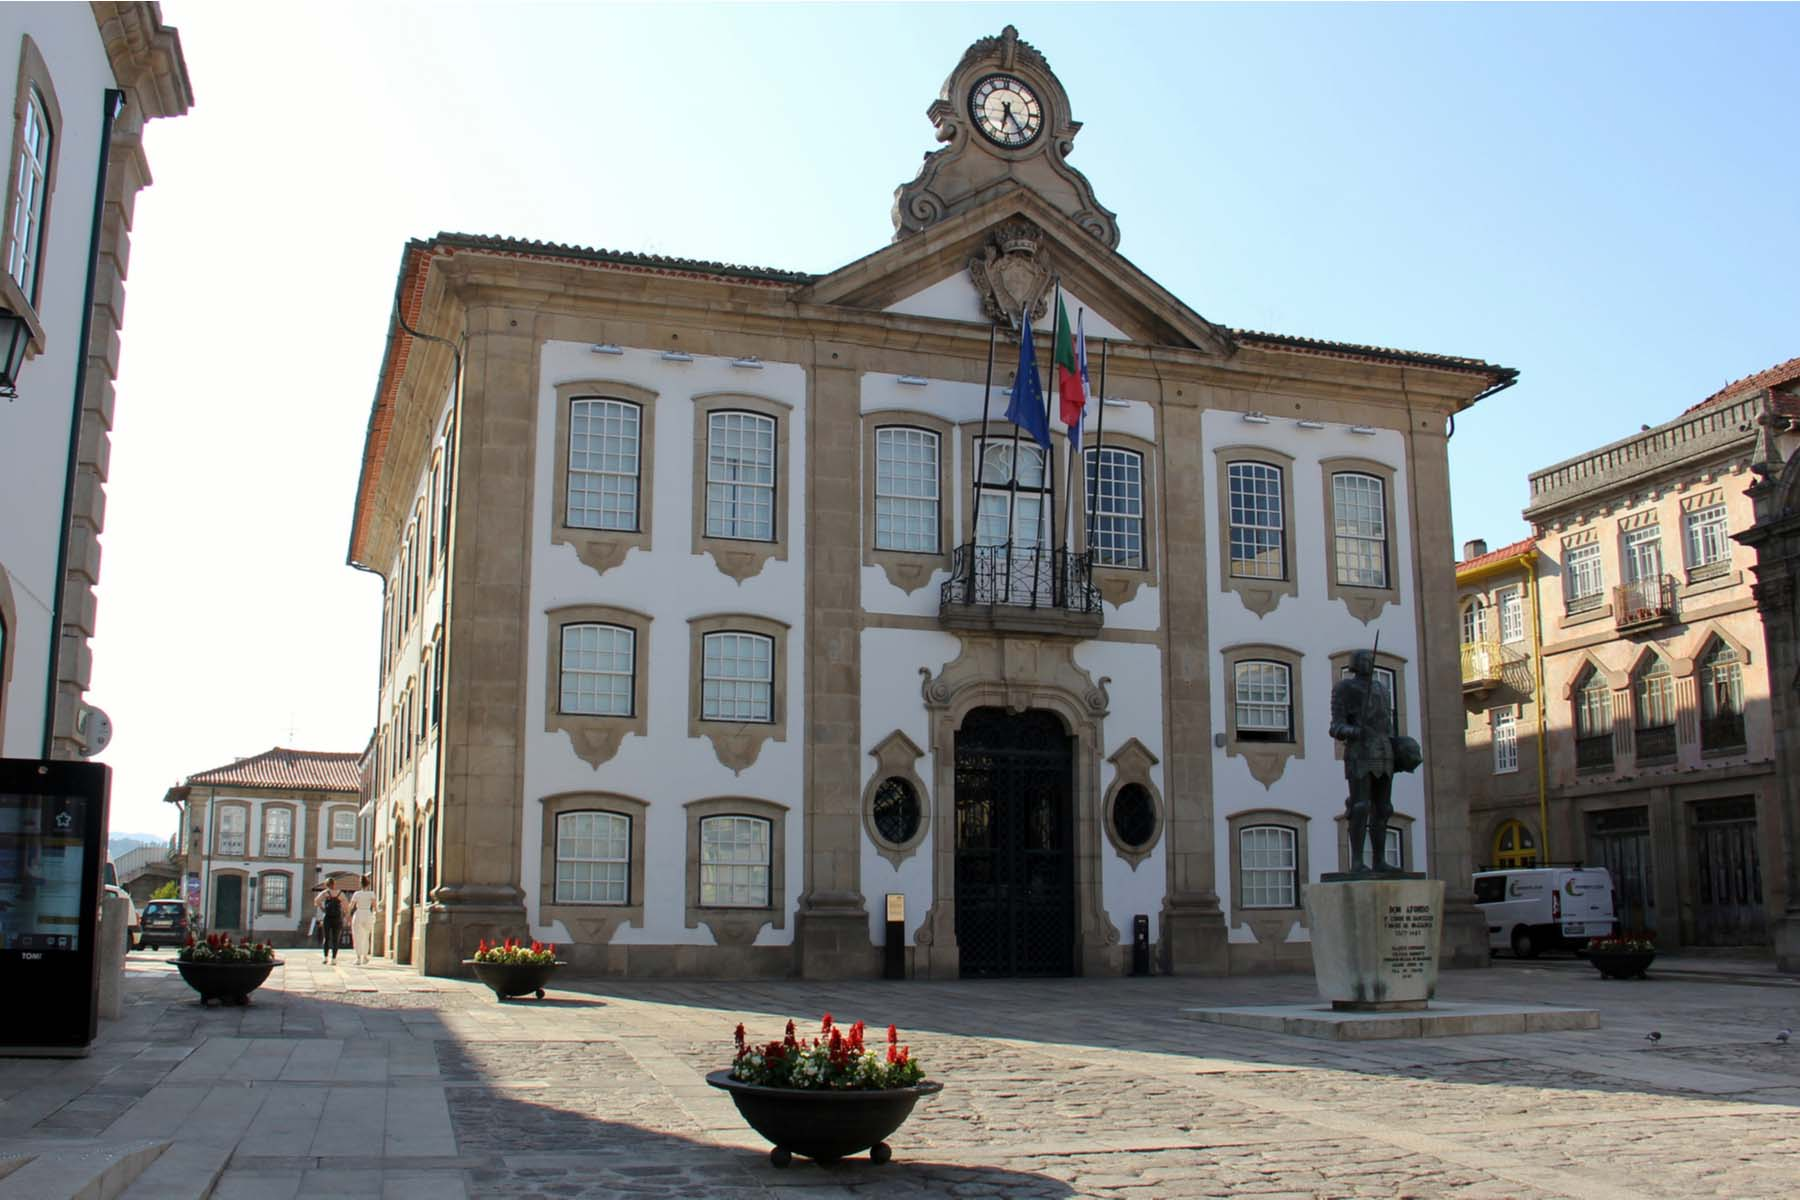 town hall in Portugal